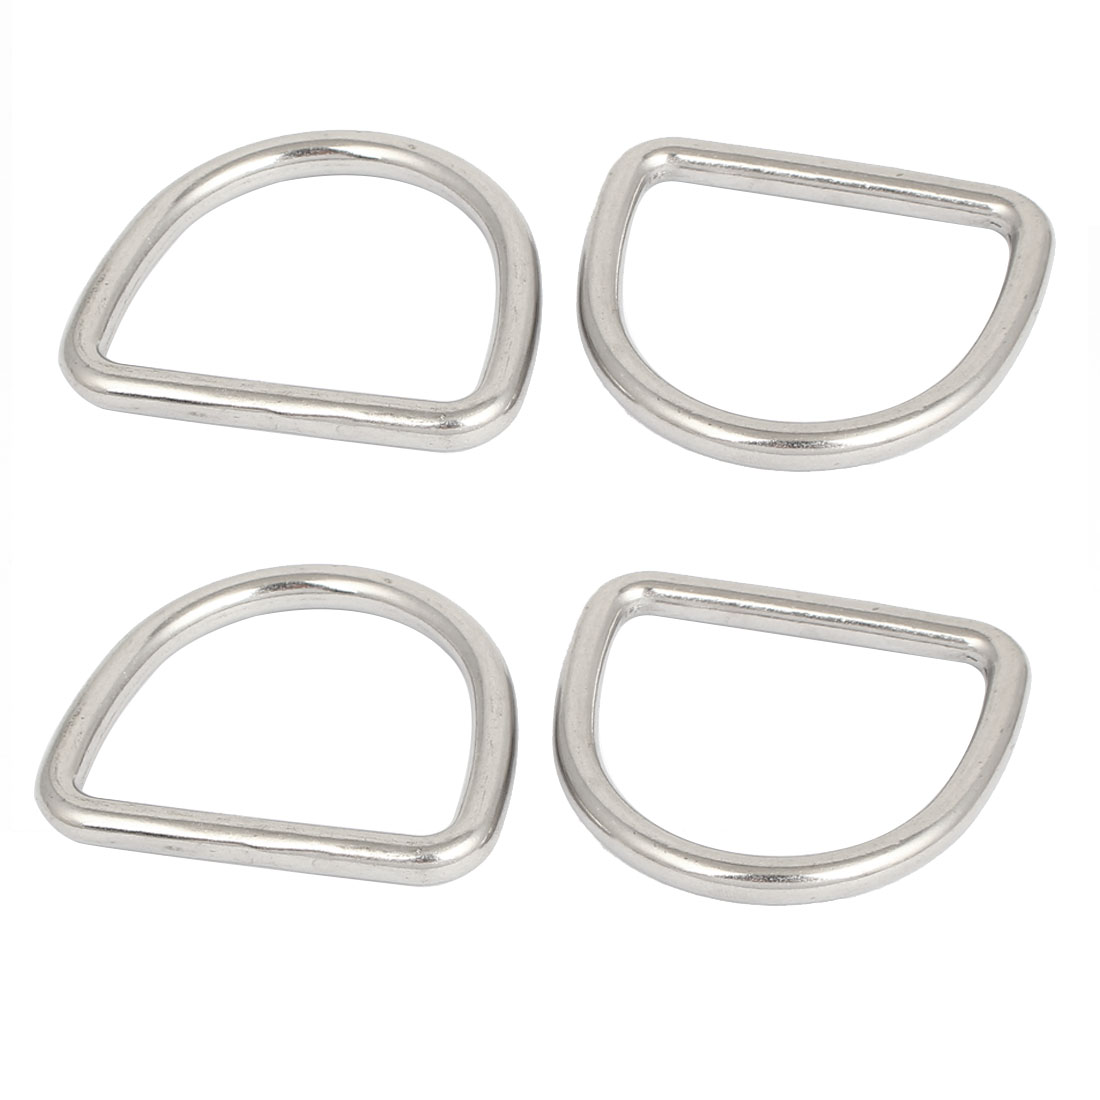 D Ring Hooks D-Shaped Buckles Handbag Belt Buckle Silver Tone 4 Pcs